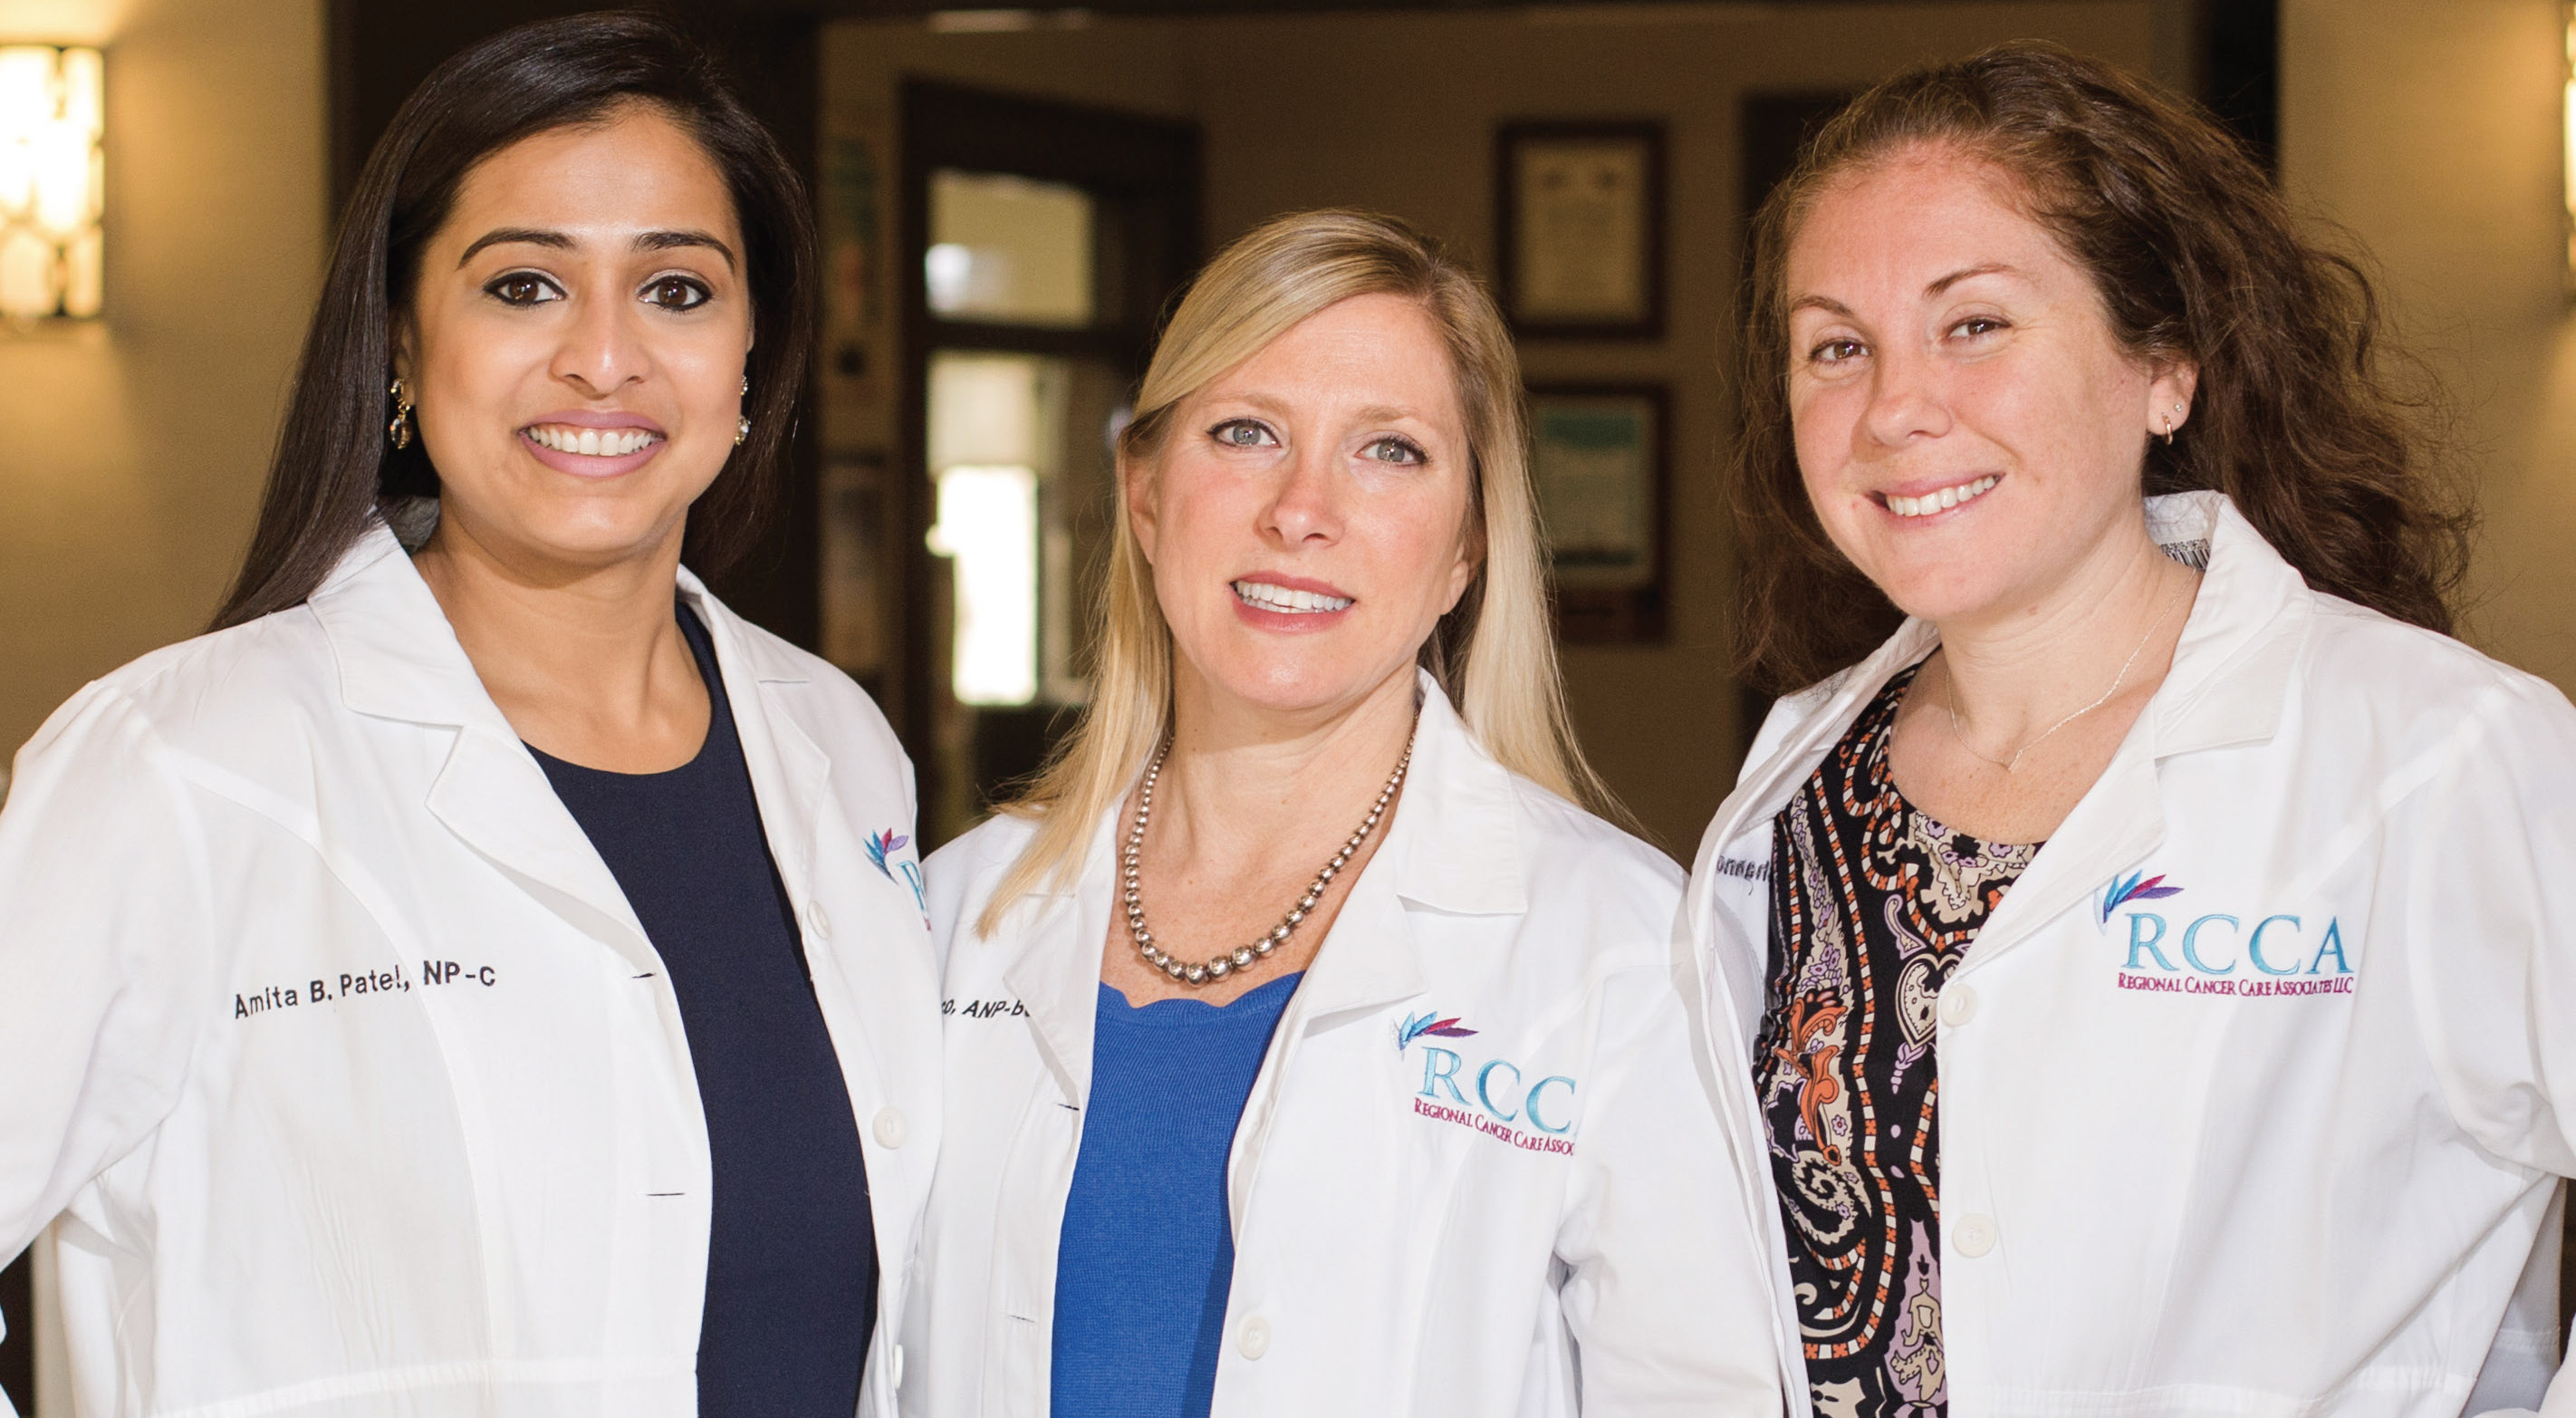 From left: Amita Patel, NP-C, AOCNP,